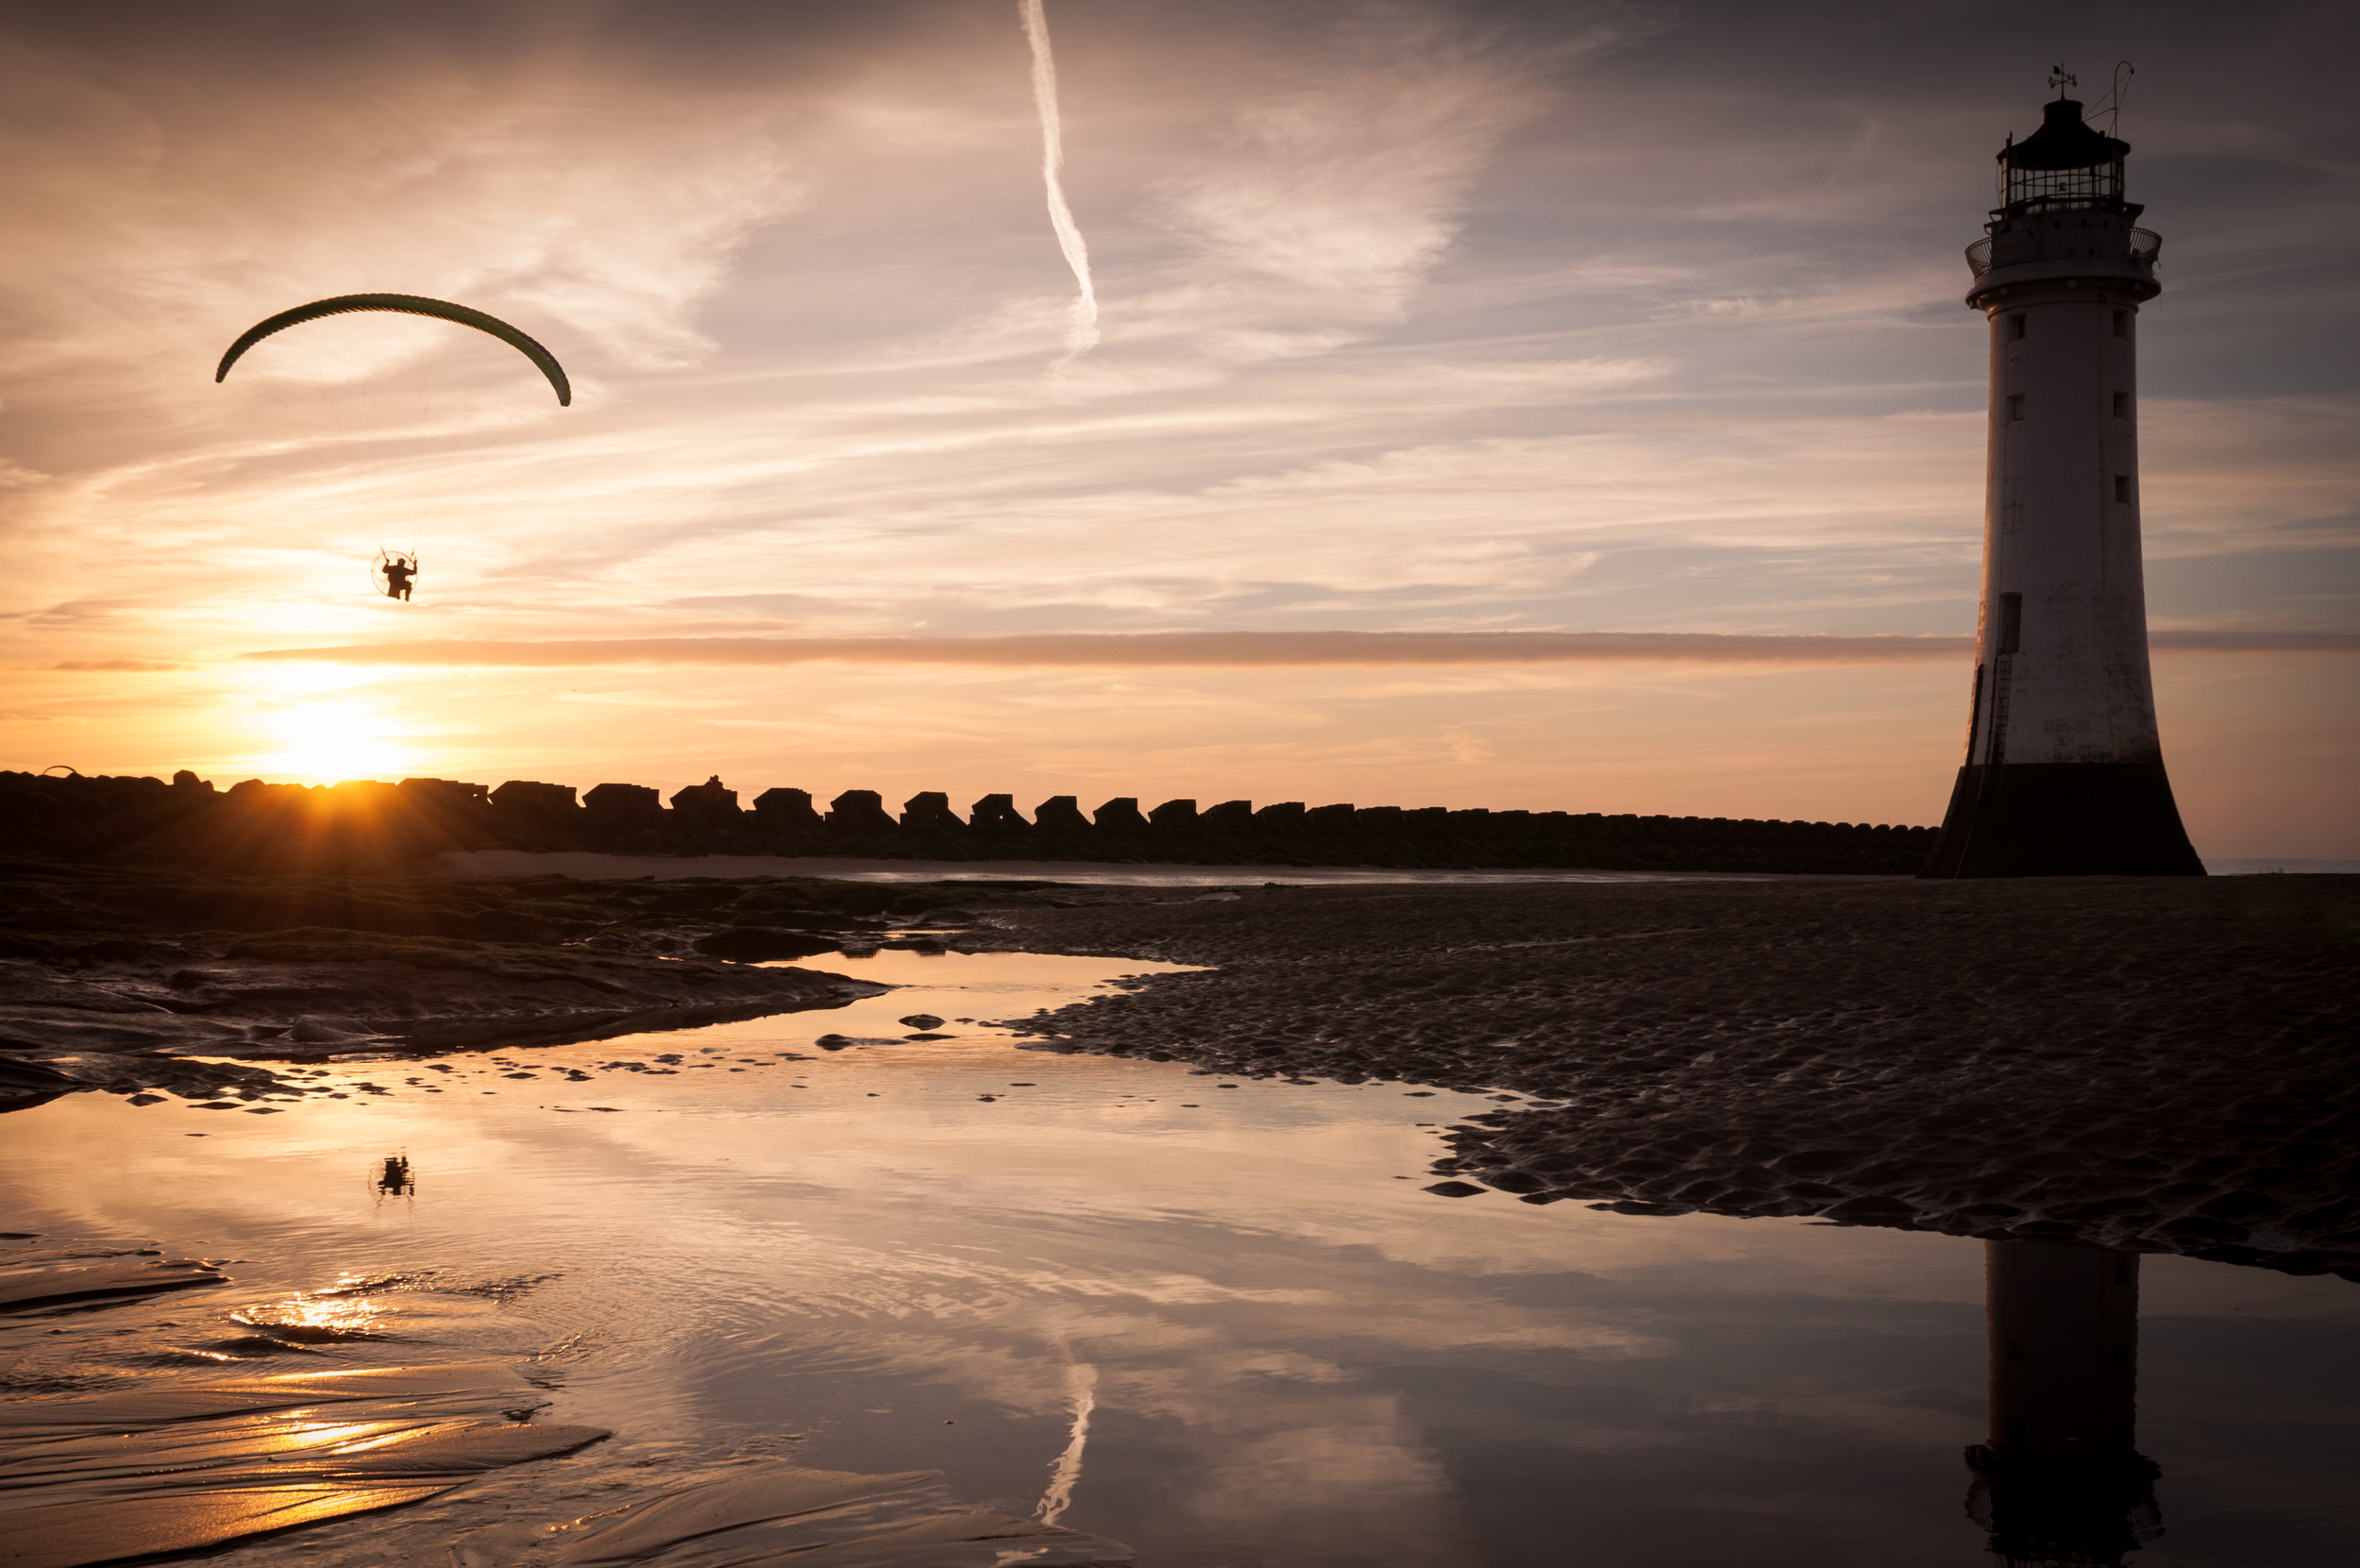 New Brighton - Paraglider